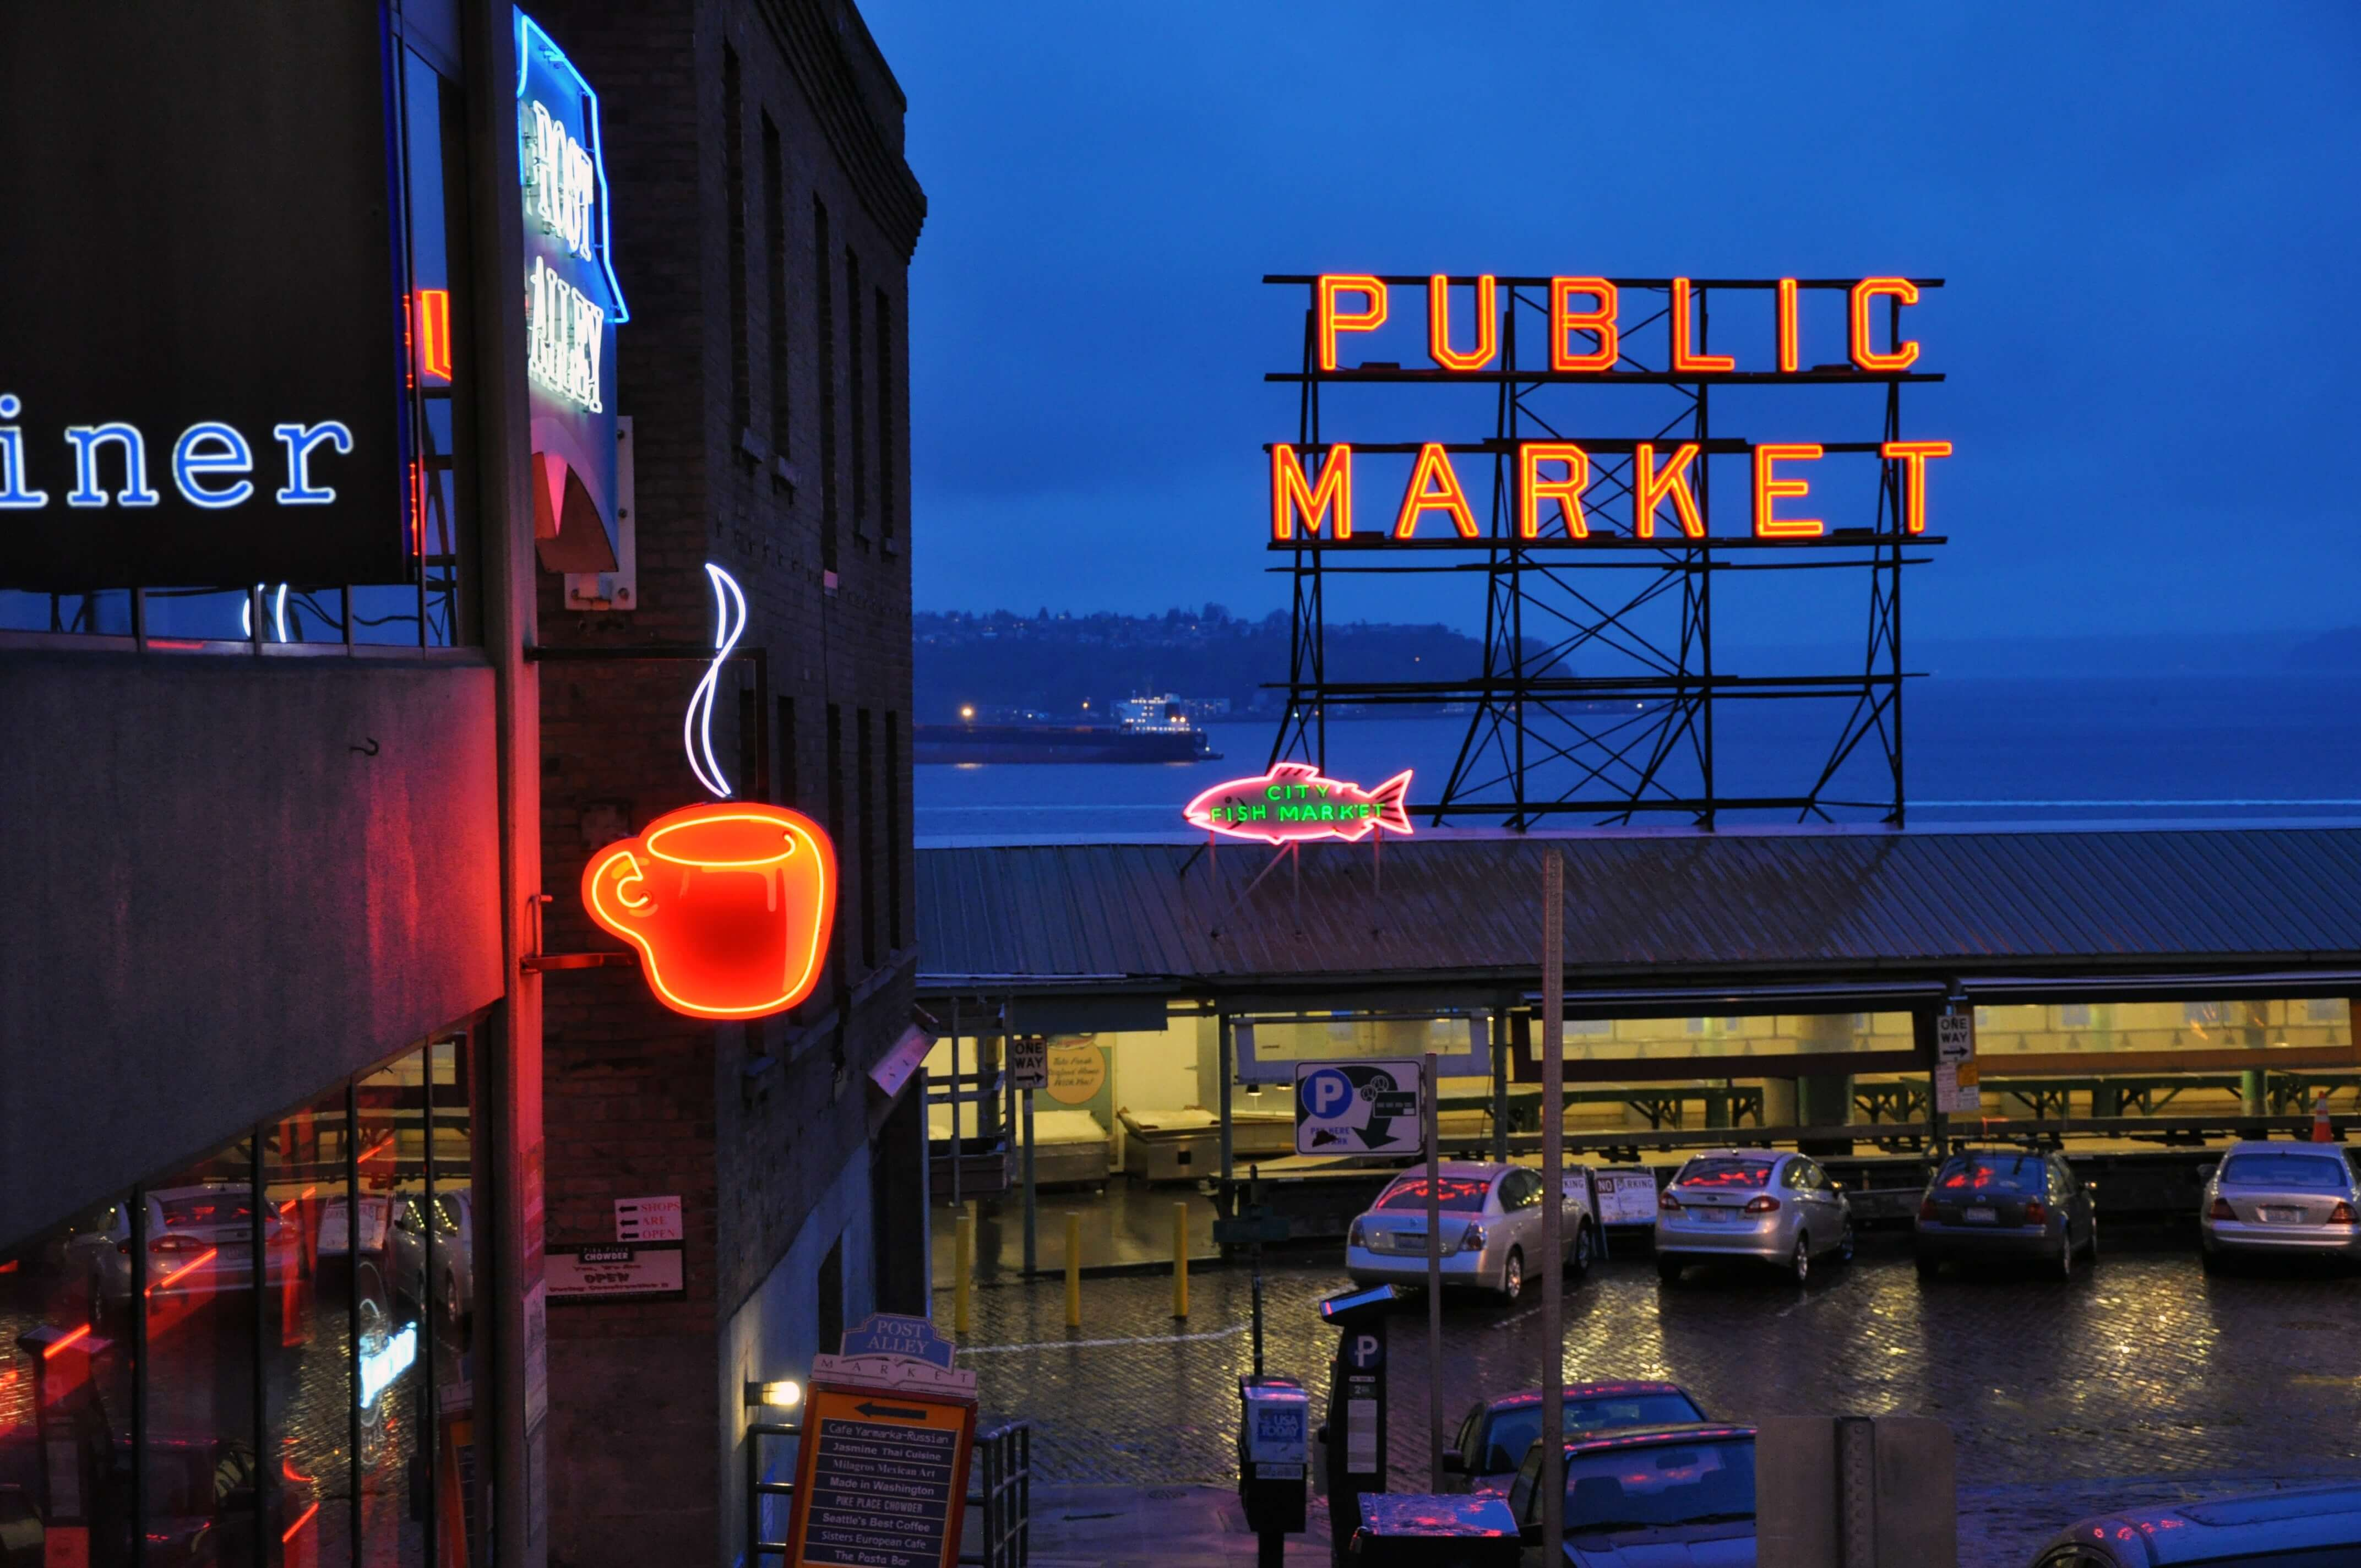 PIke's Market in Seattle